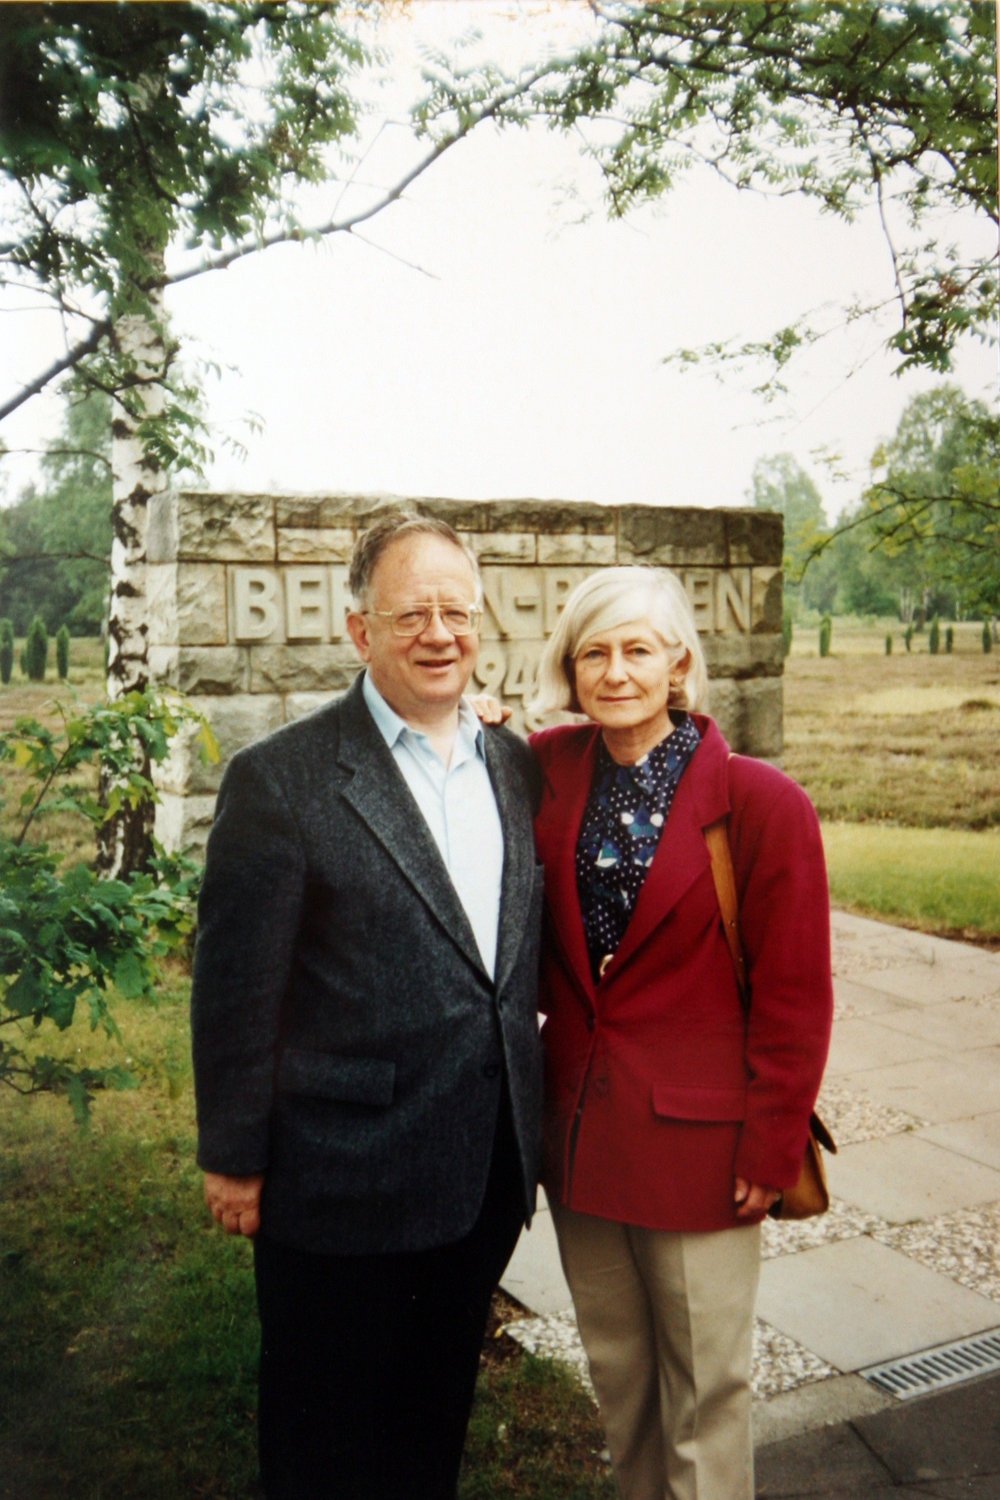 Irene and her brother Werner visiting the site of Camp Bergen-Belsen in 1991.